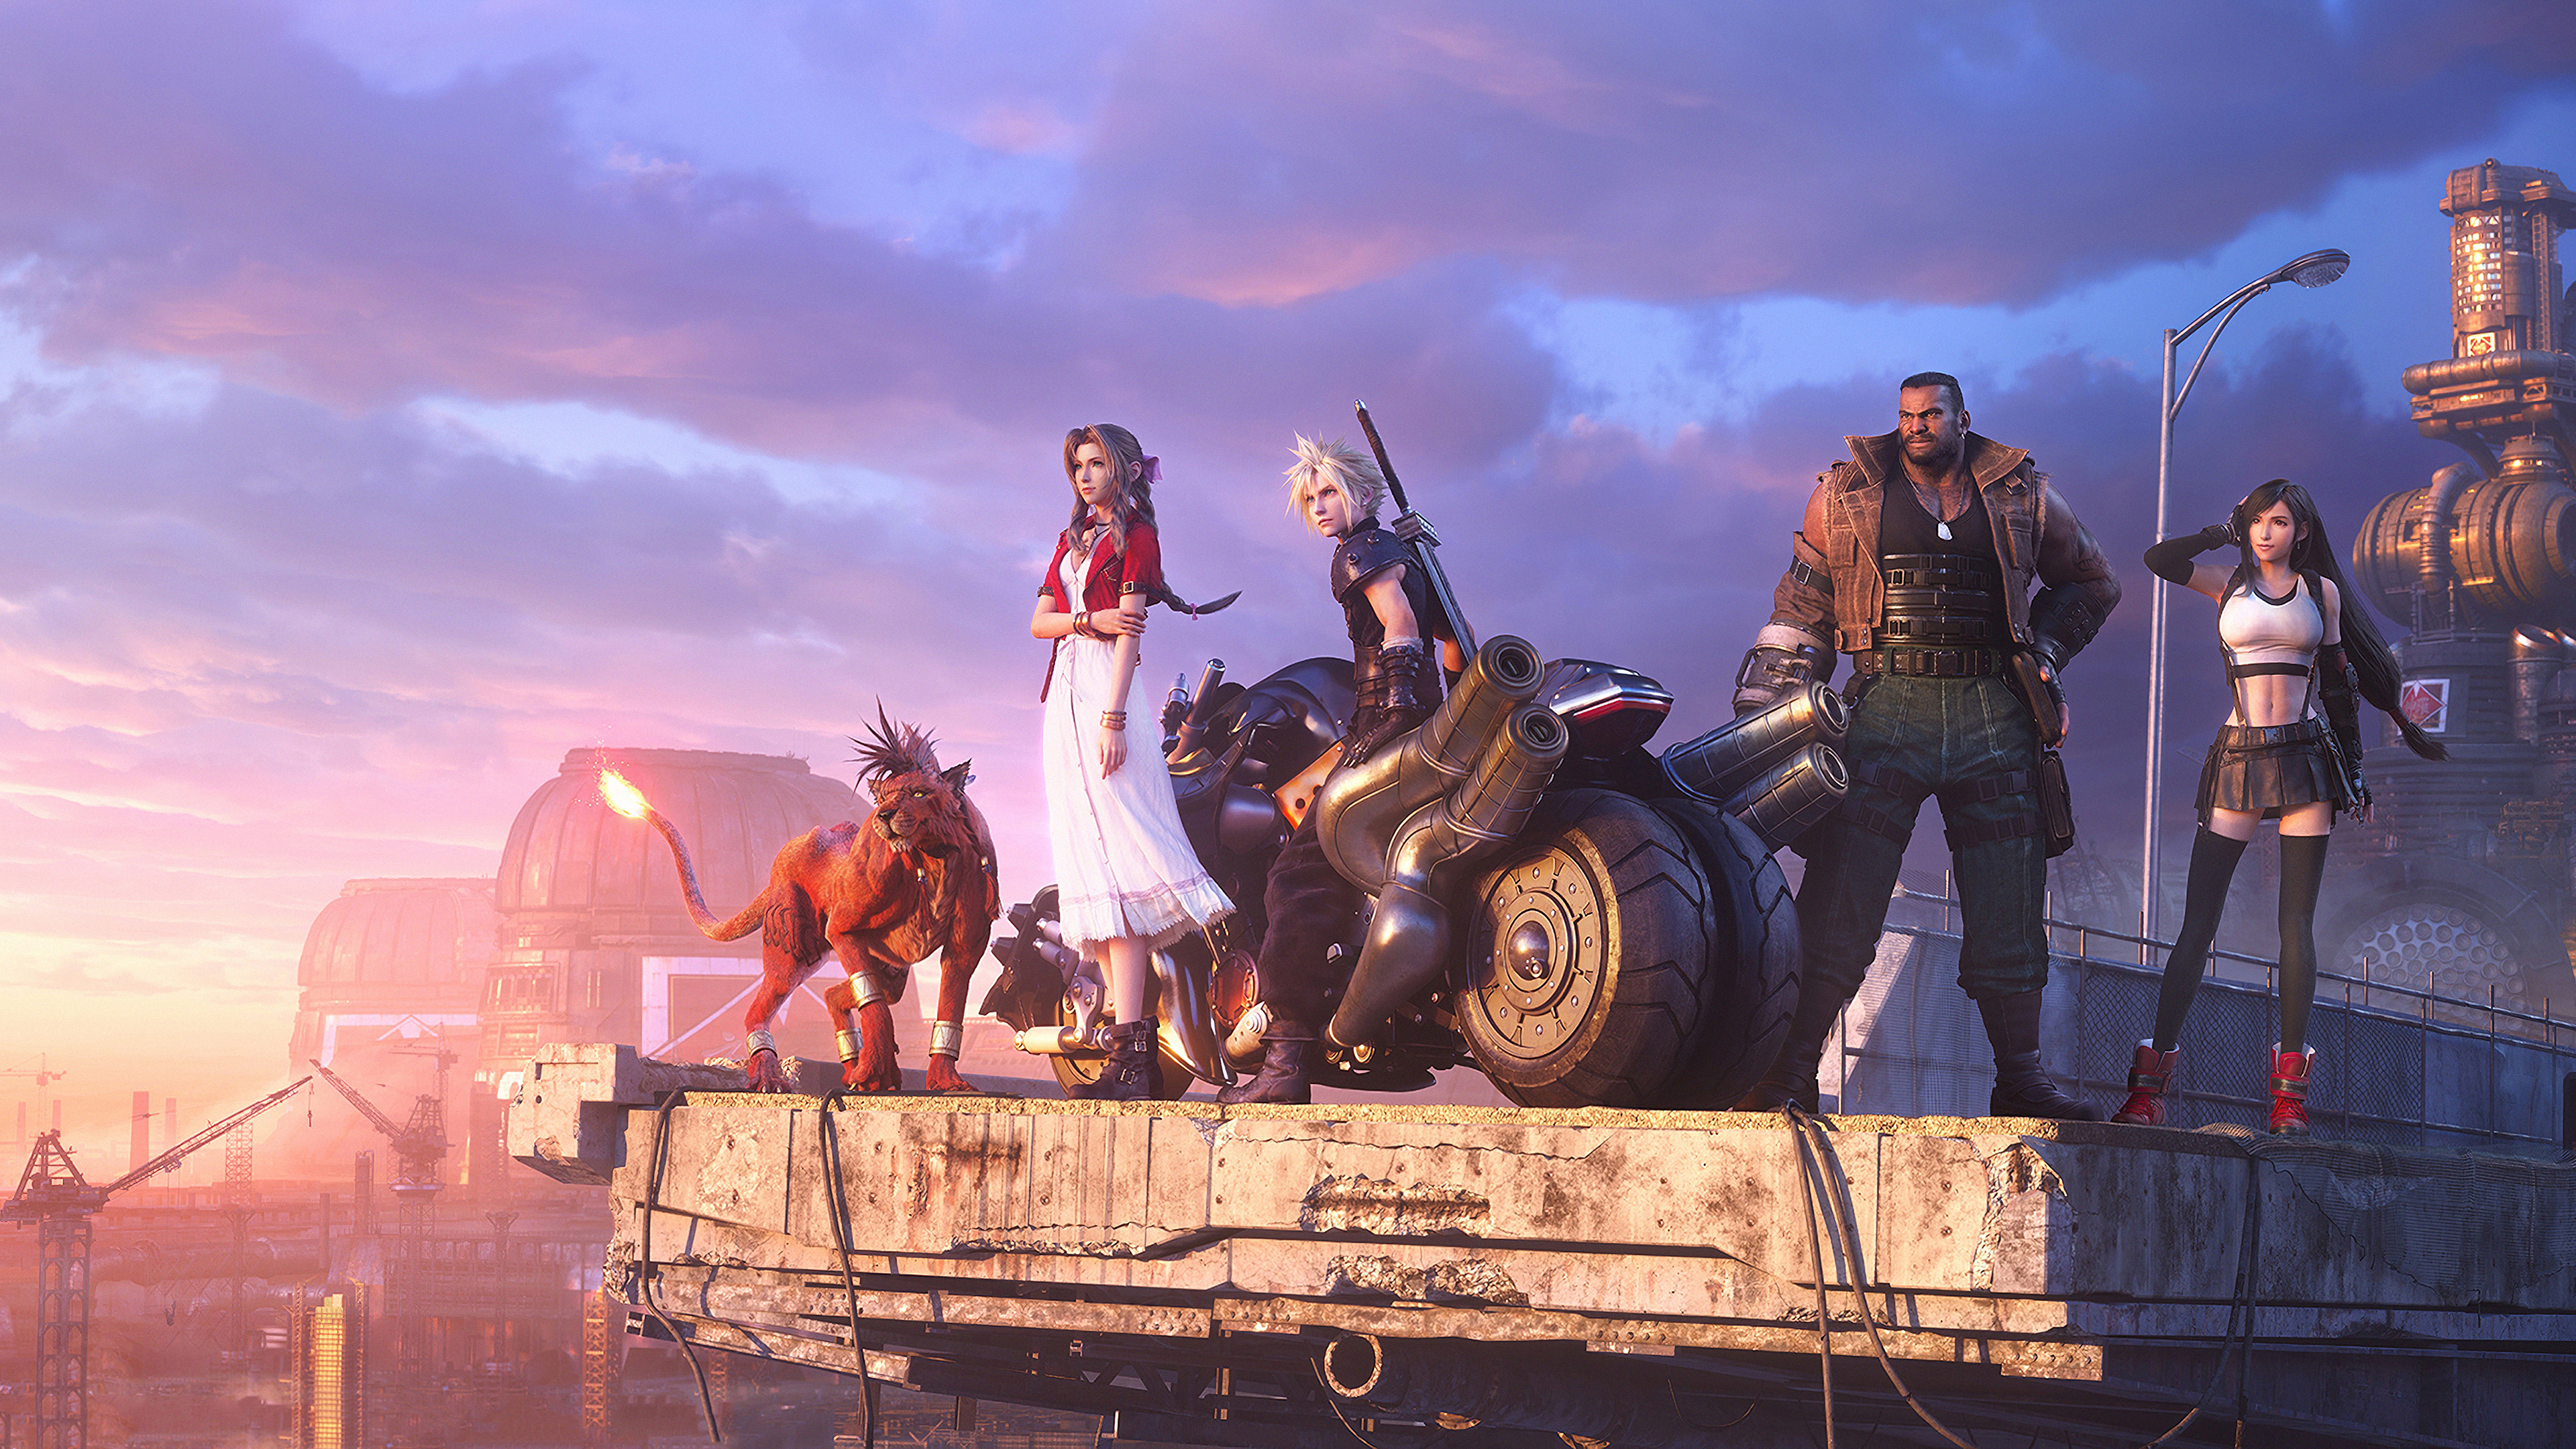 General 3840x2160 Final Fantasy VII PlayStation video games Final Fantasy VII: Remake Red XIII Aerith Gainsborough Cloud Strife Barret Wallace Tifa Lockhart